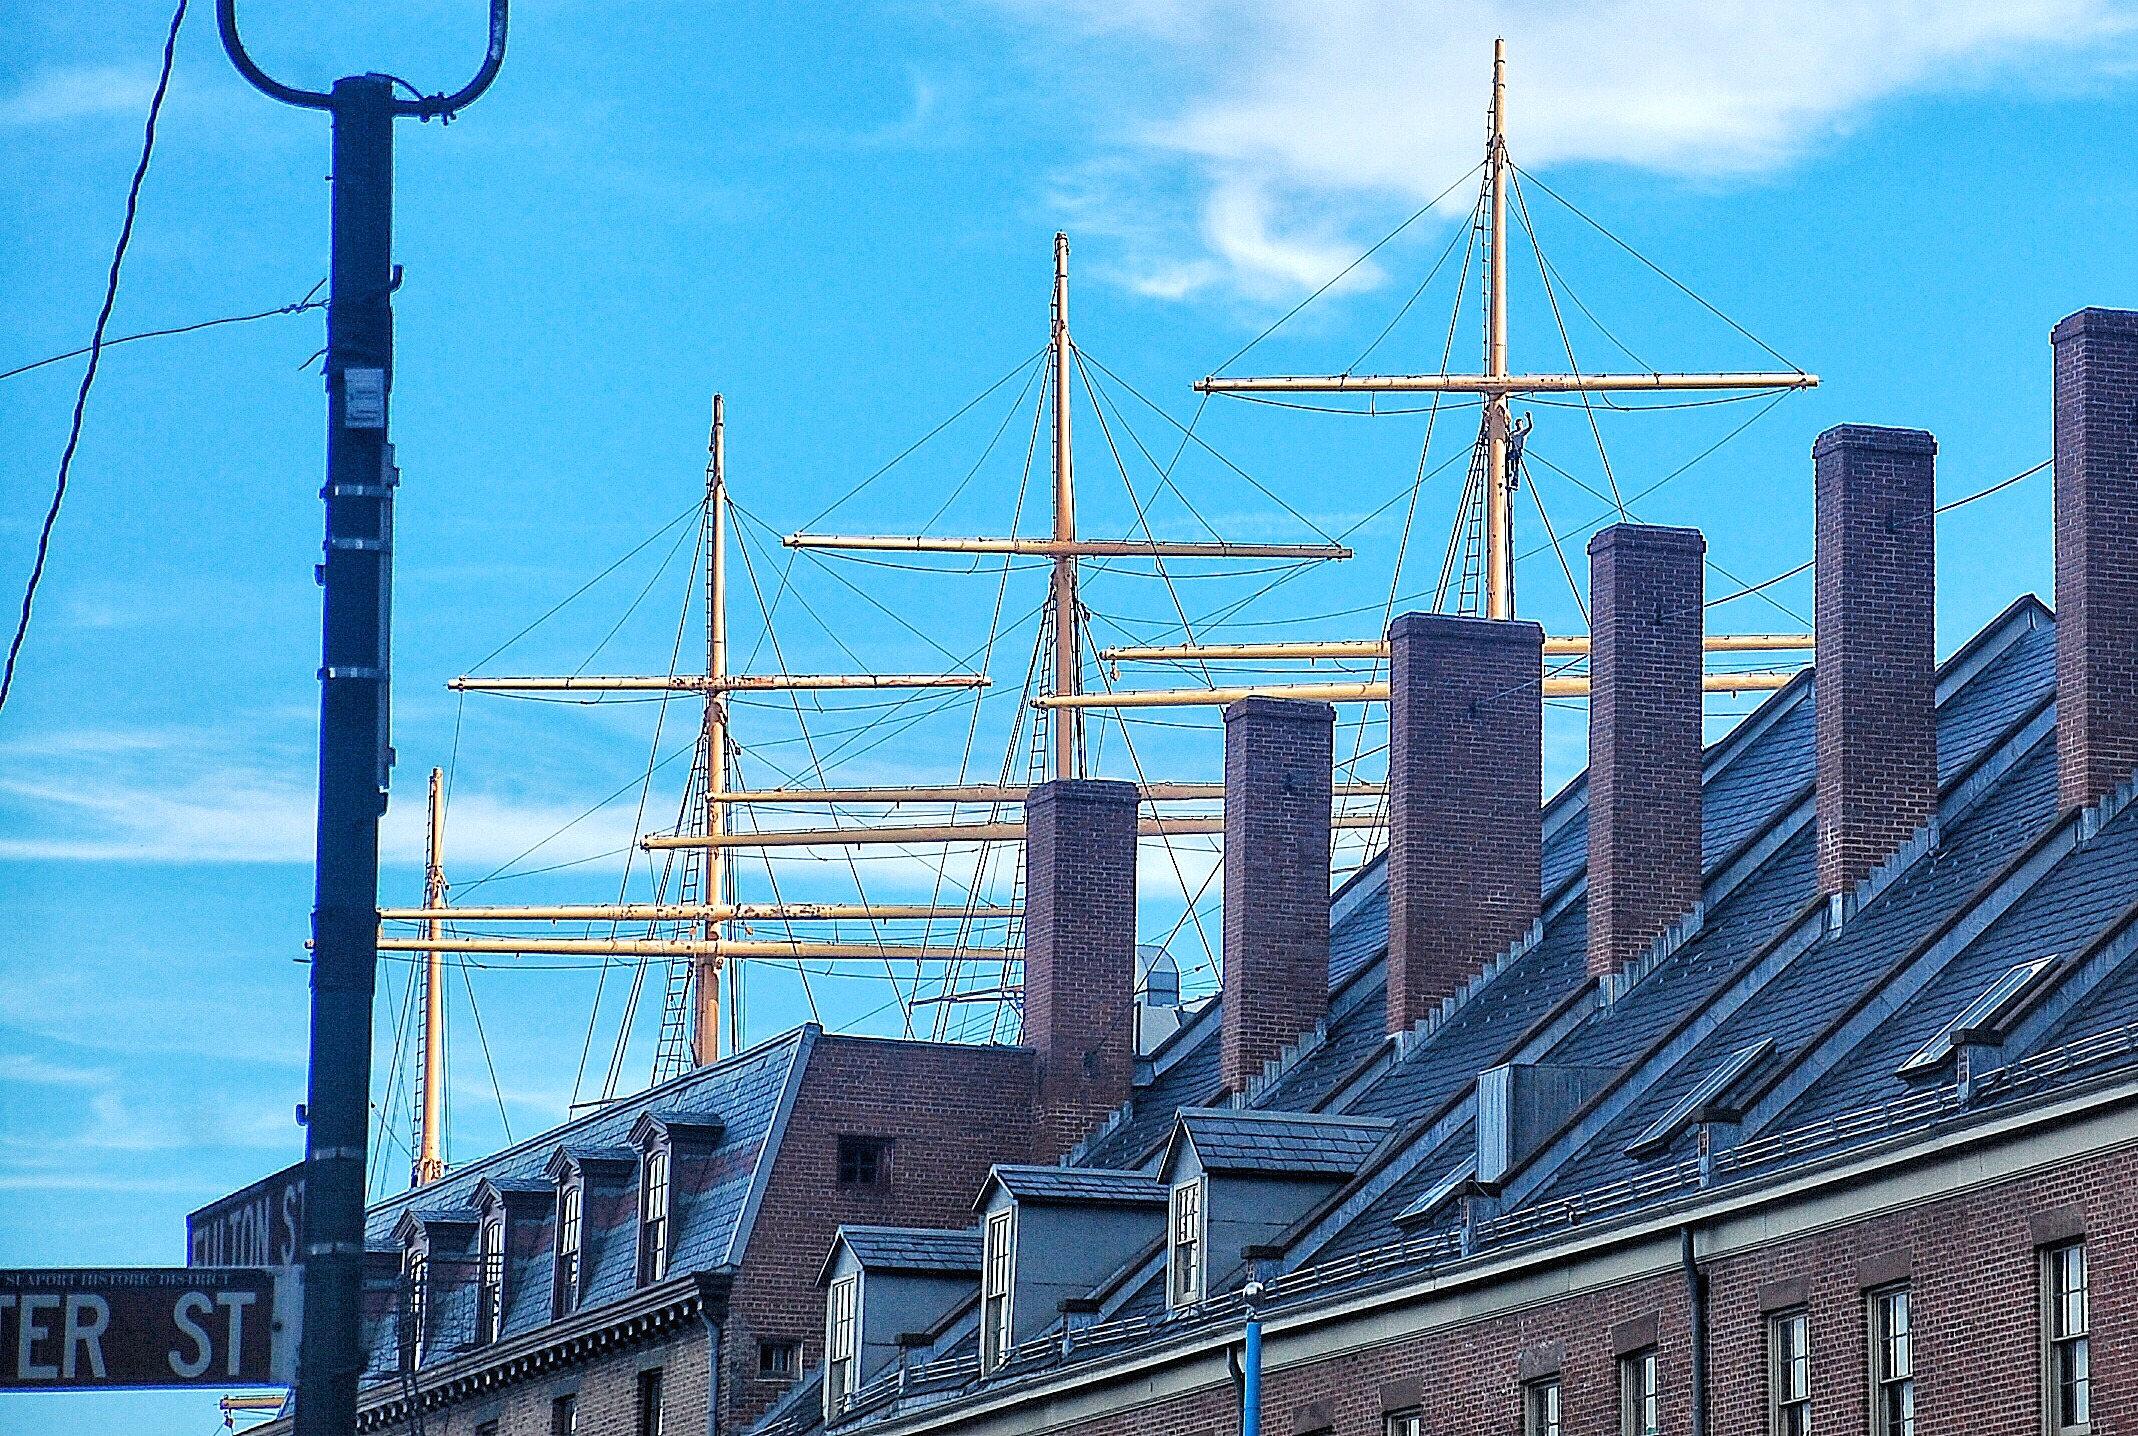 South Street Seaport Historic District, South Street Seaport Museum